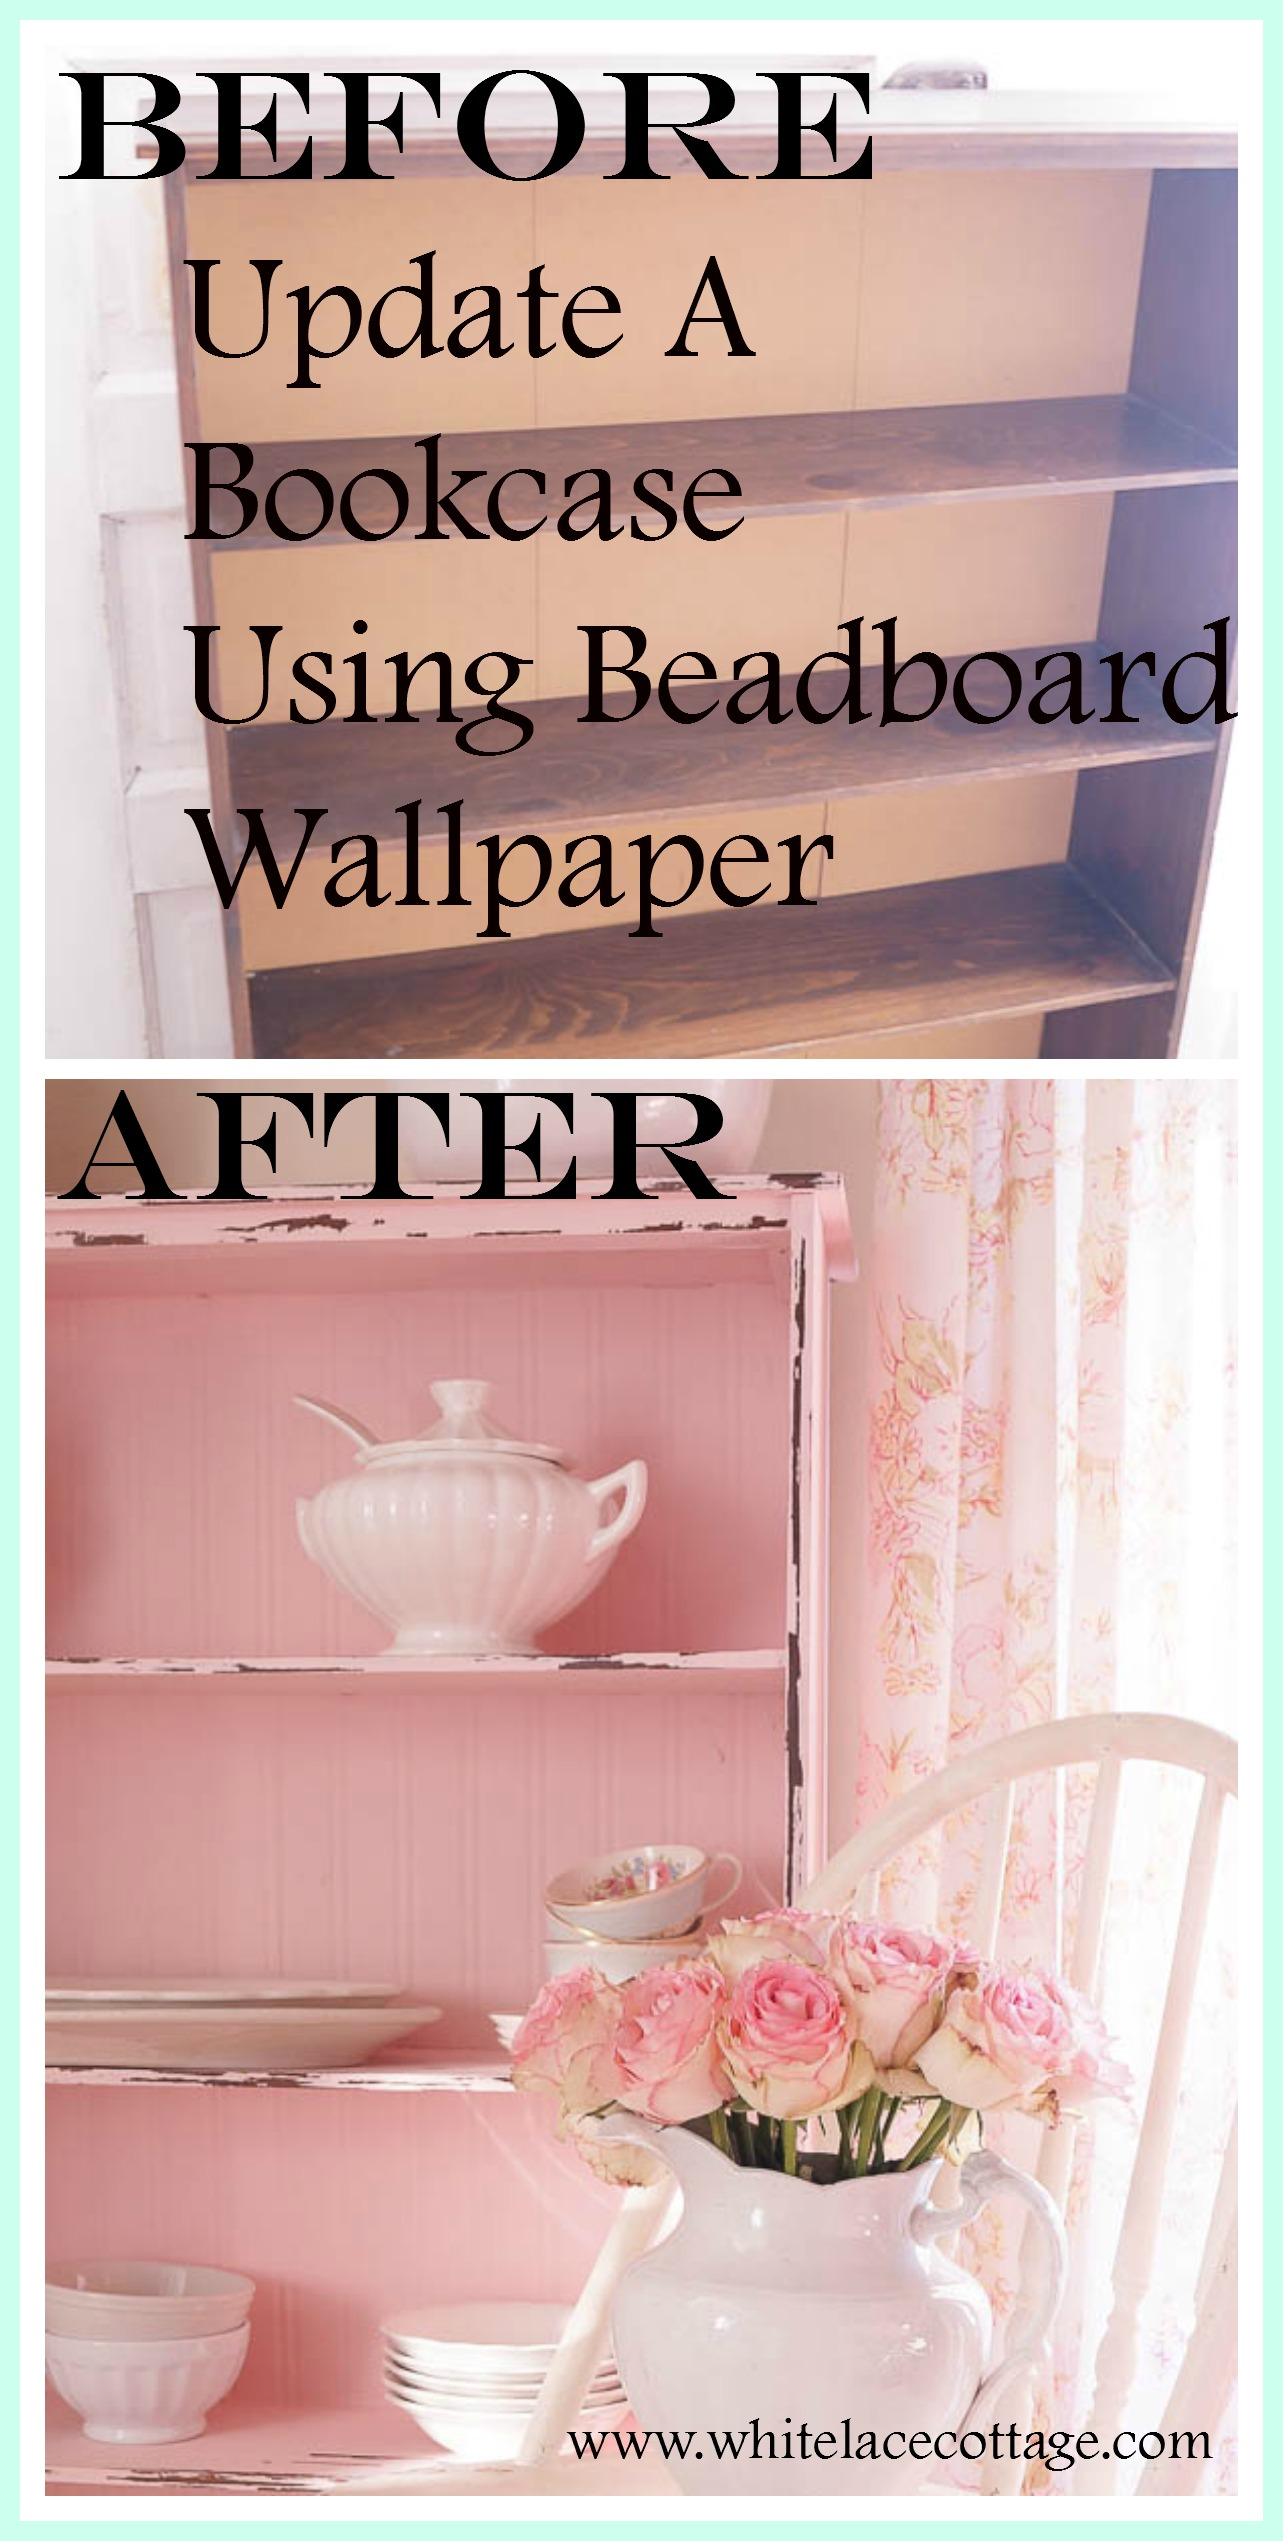 Updating a bookcase with beadboard wallpaper is so simple to do, and a great way to update a cheap piece of furniture!